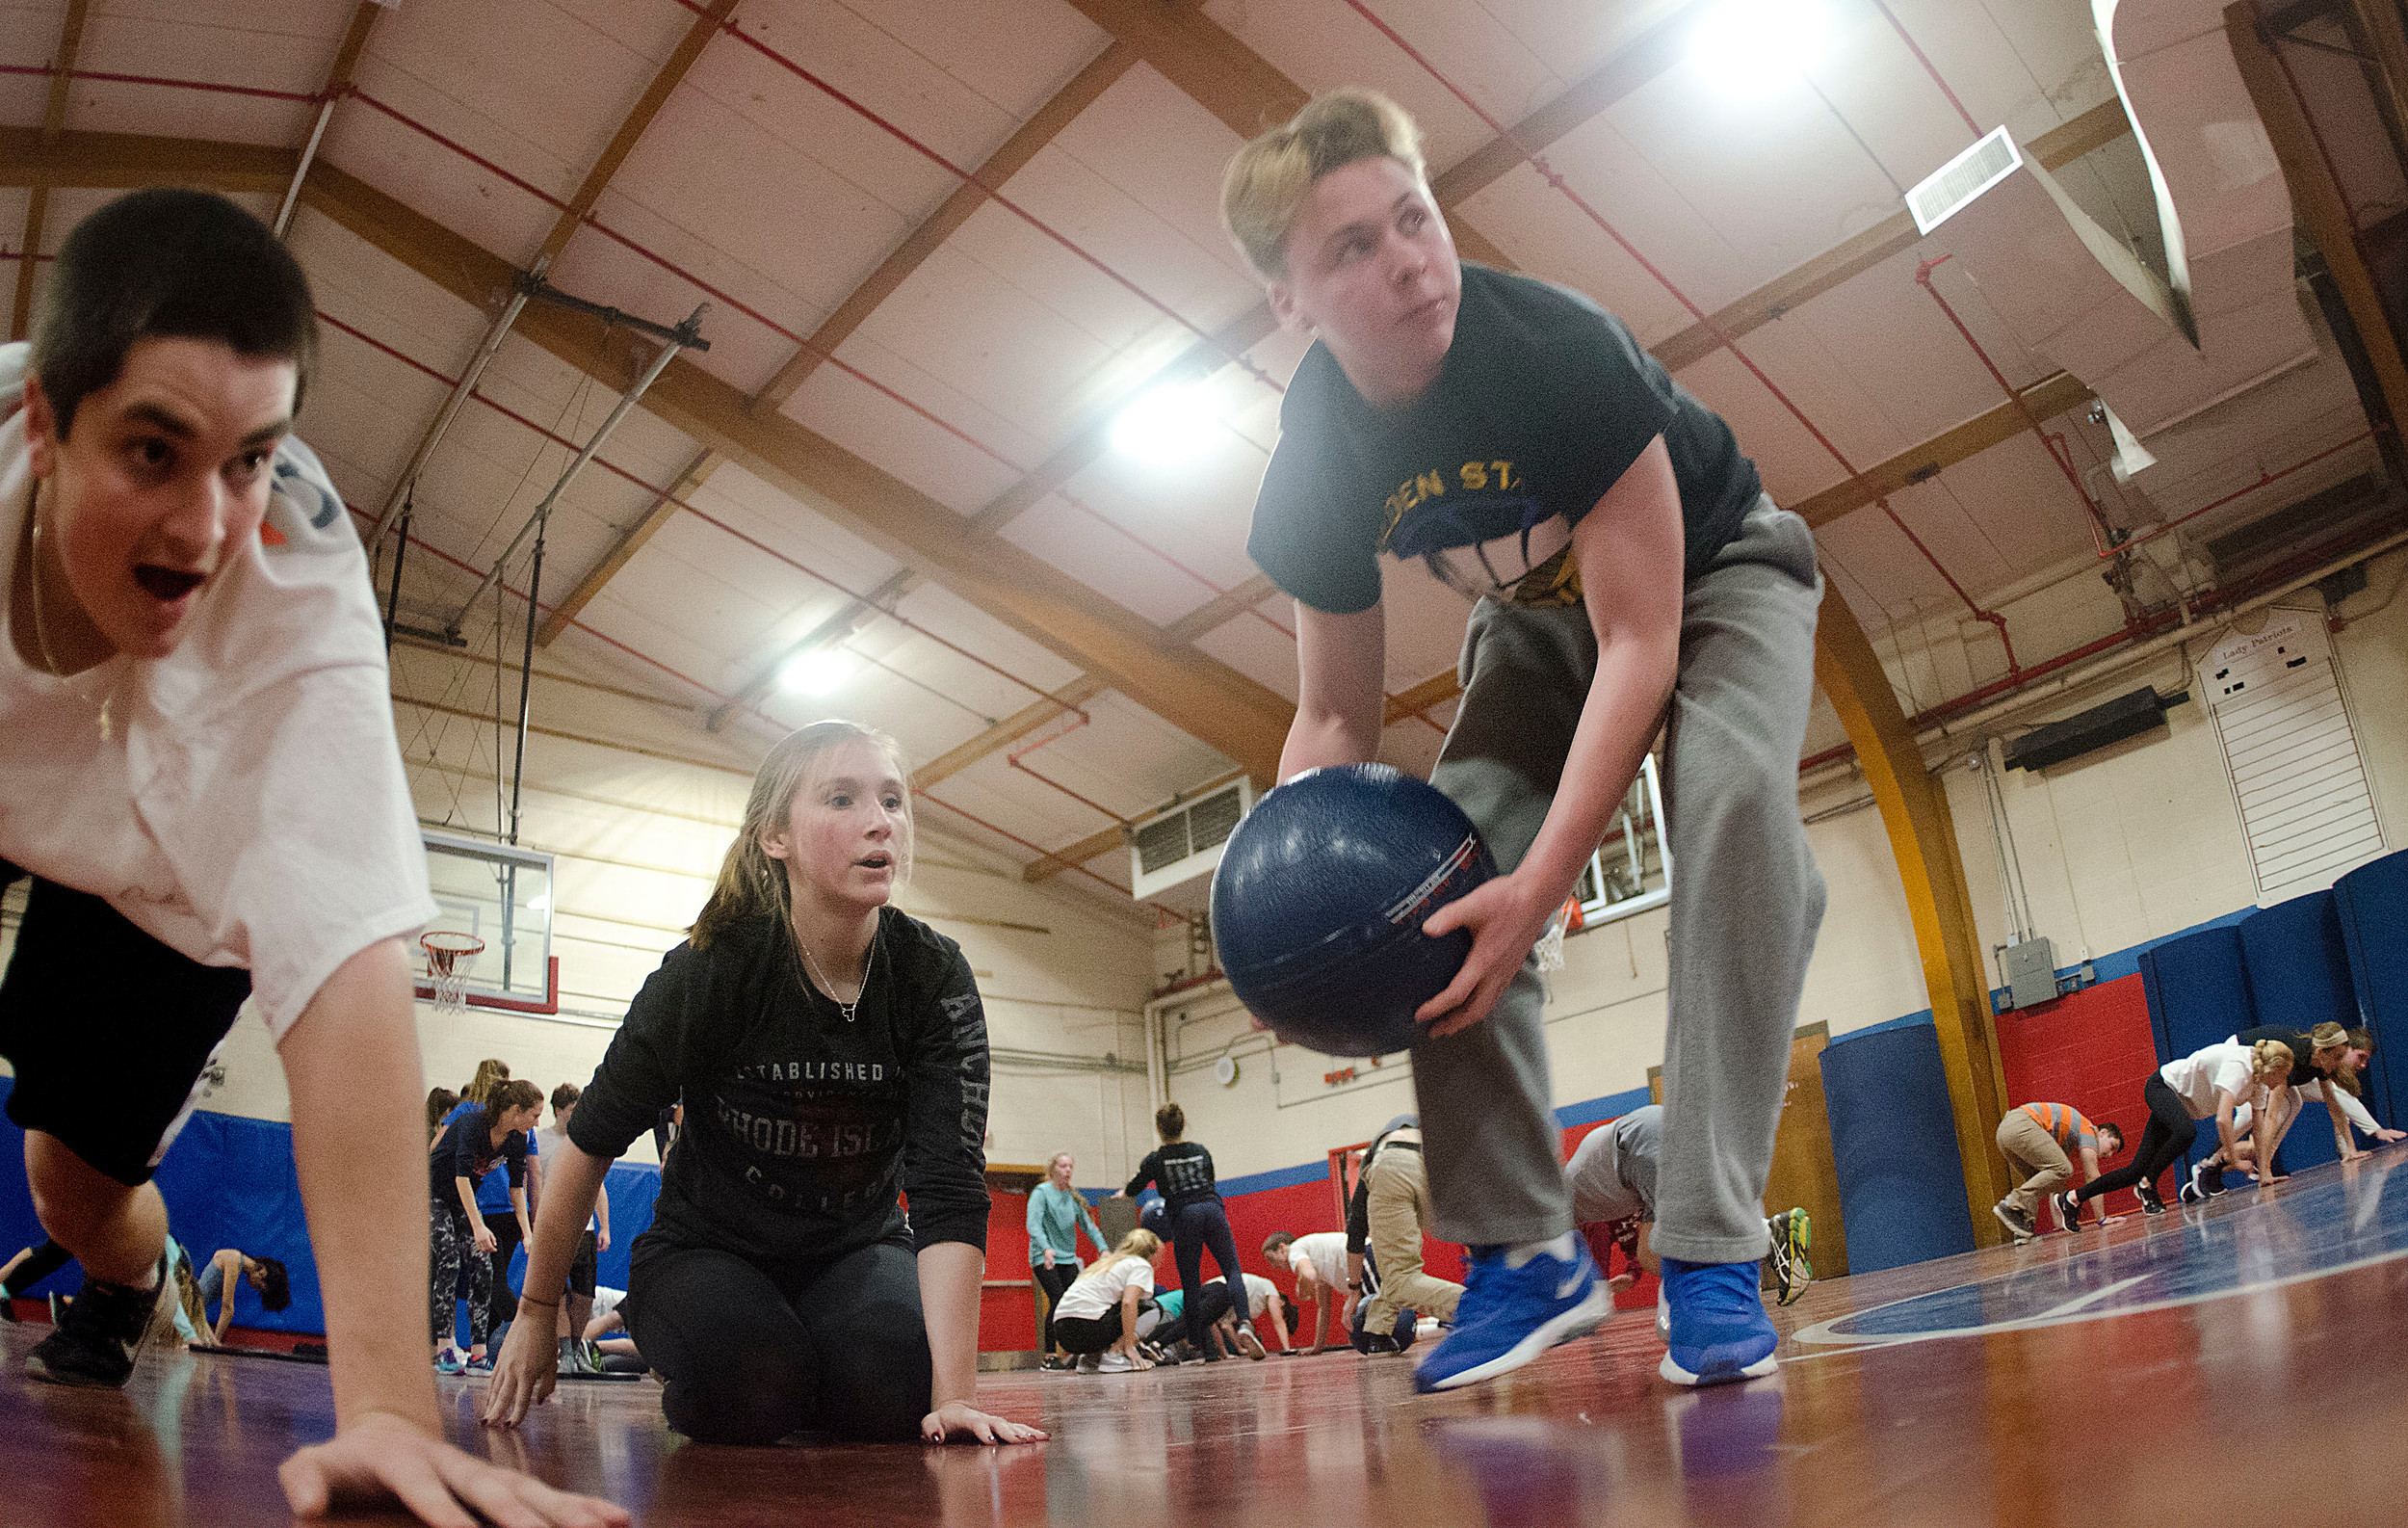 Noah McHugh, Kelly Conley and Connor Stone race across the gym against the other teams, bear-crawling and heaving a giant medicine ball during a drill.